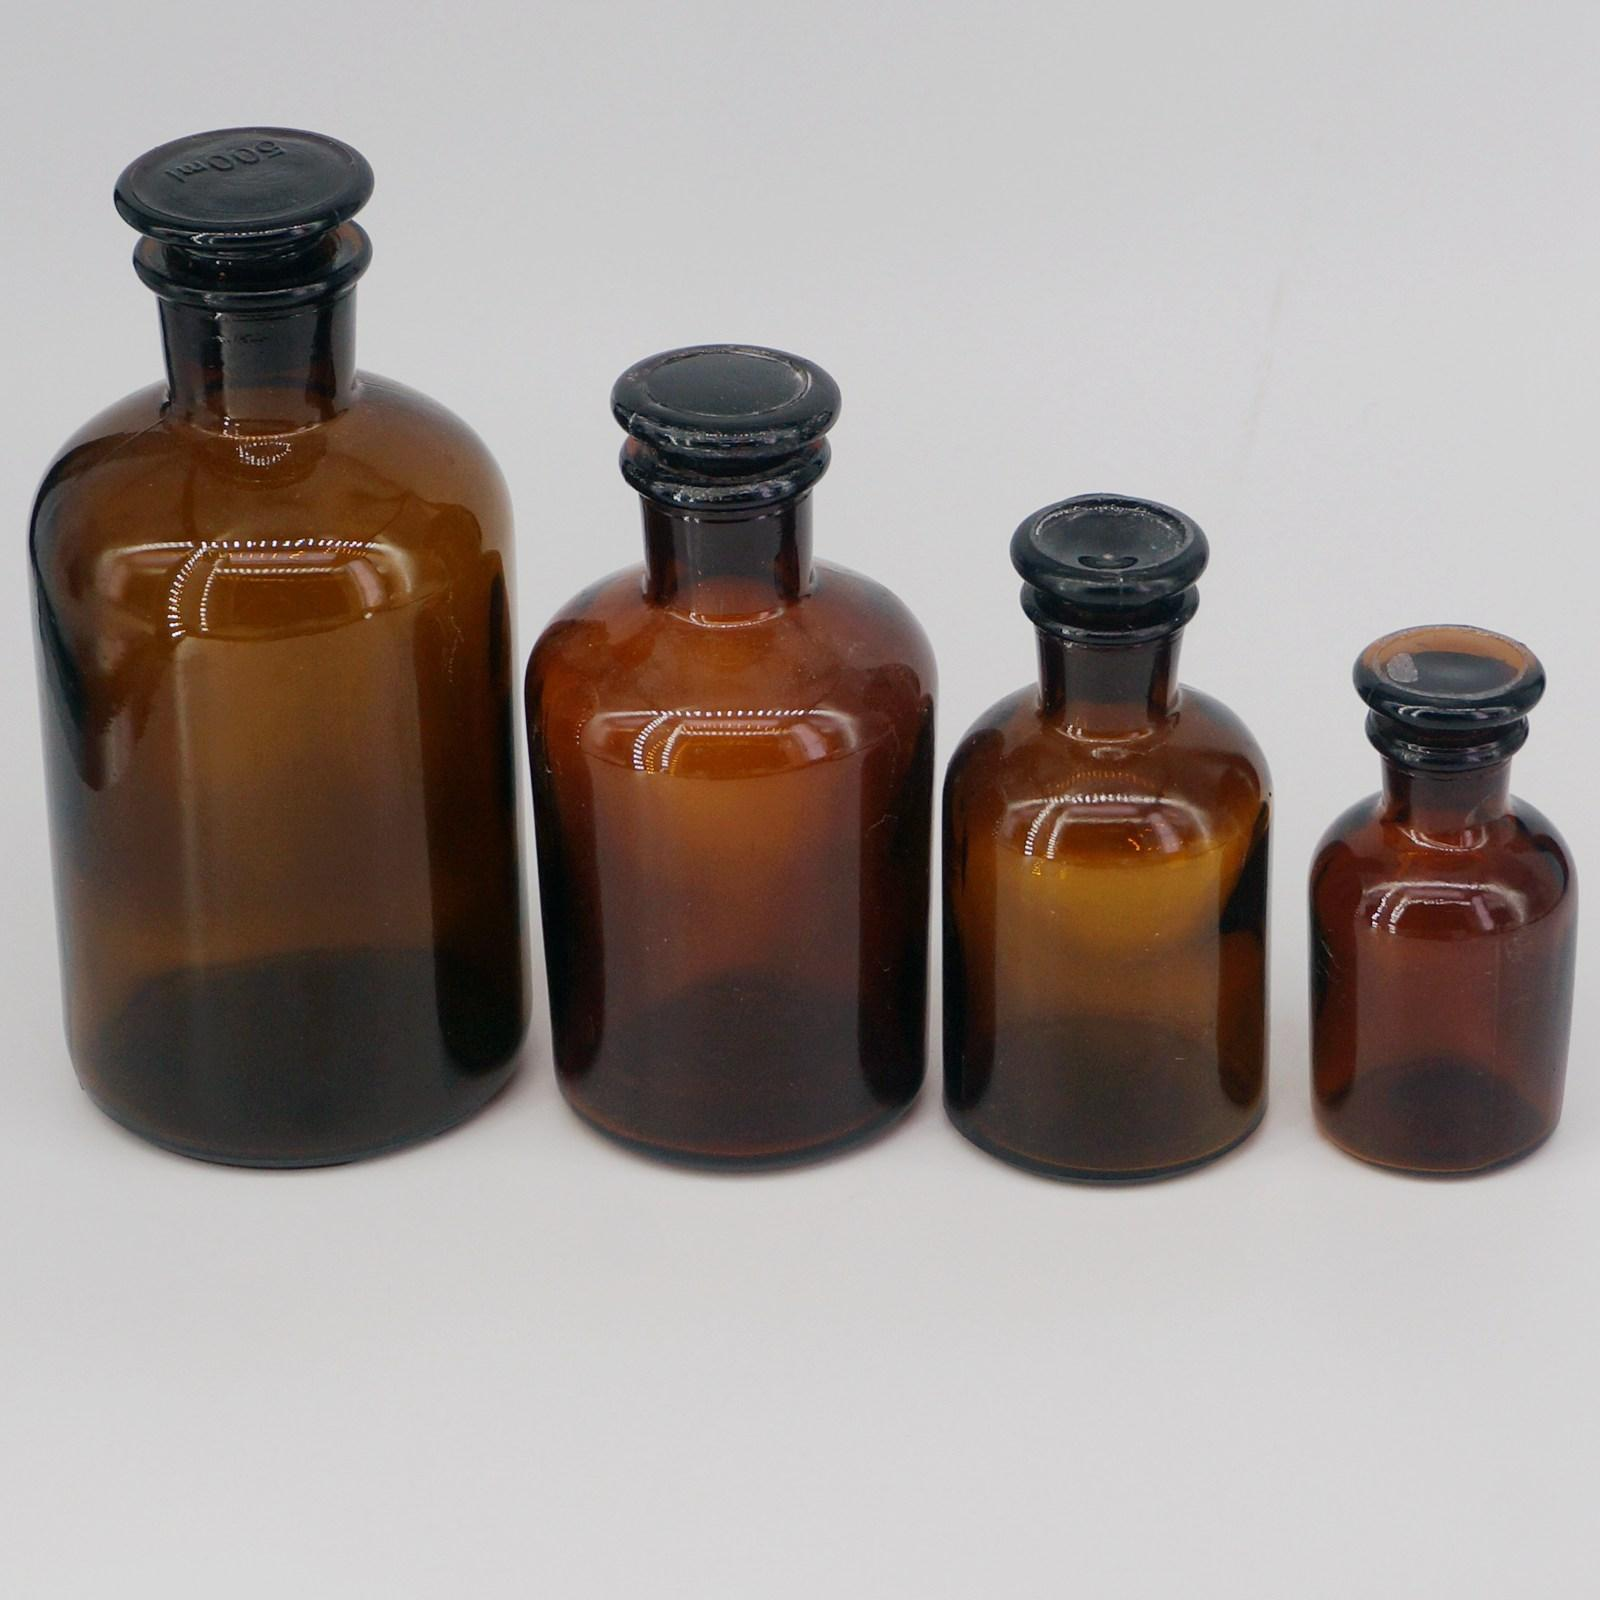 60ml 125ml 250ml 500ml 1000ml 2500ml Brown Glass Narrow Mouth Bottle With Stooper Lab Chemistry Glassware